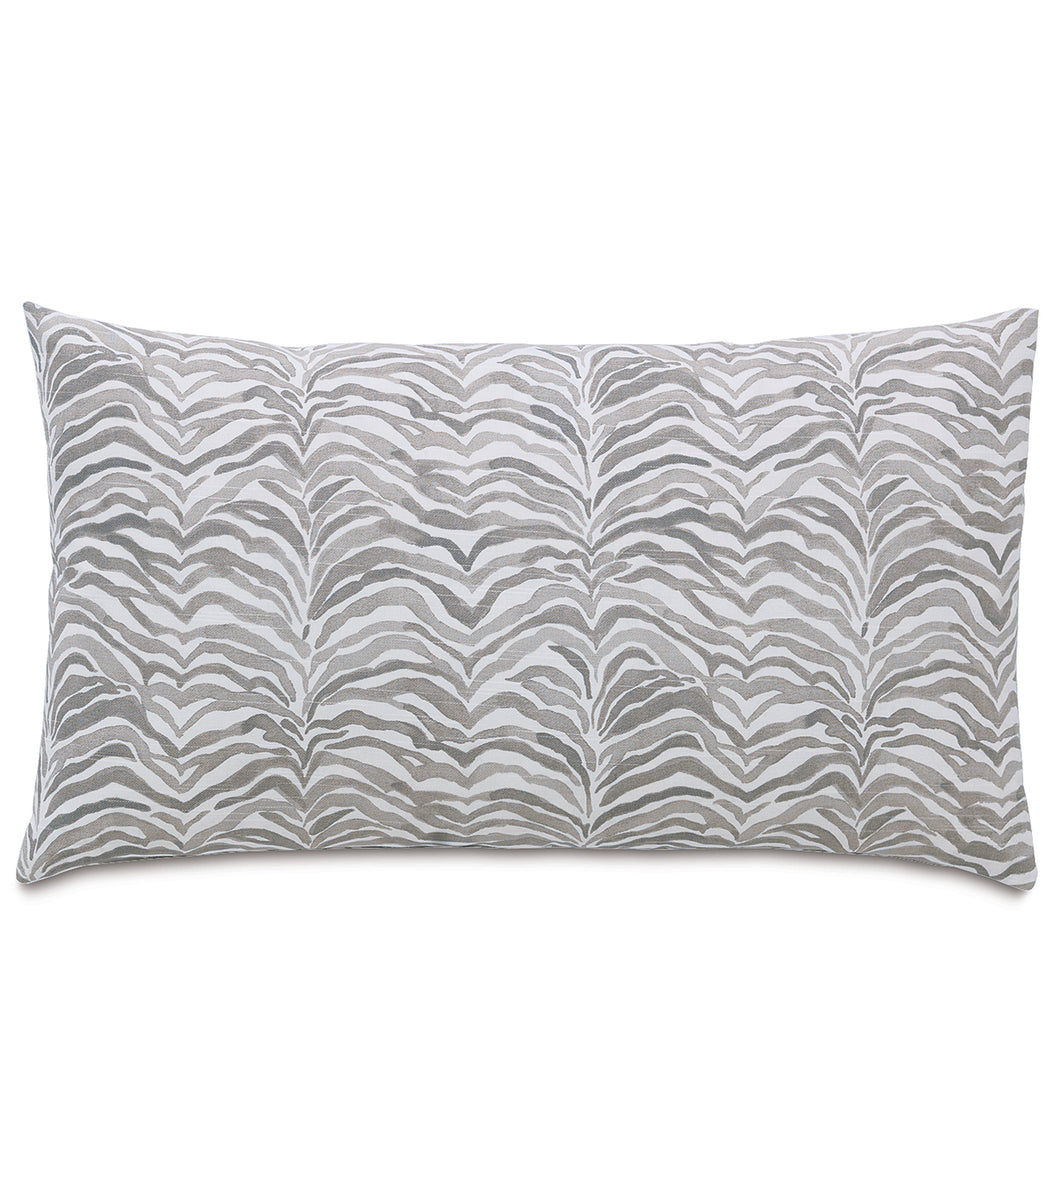 Amara Warm Gray Log Cabin Abstract Cotton Lumbar Pillow Knife Edge 15